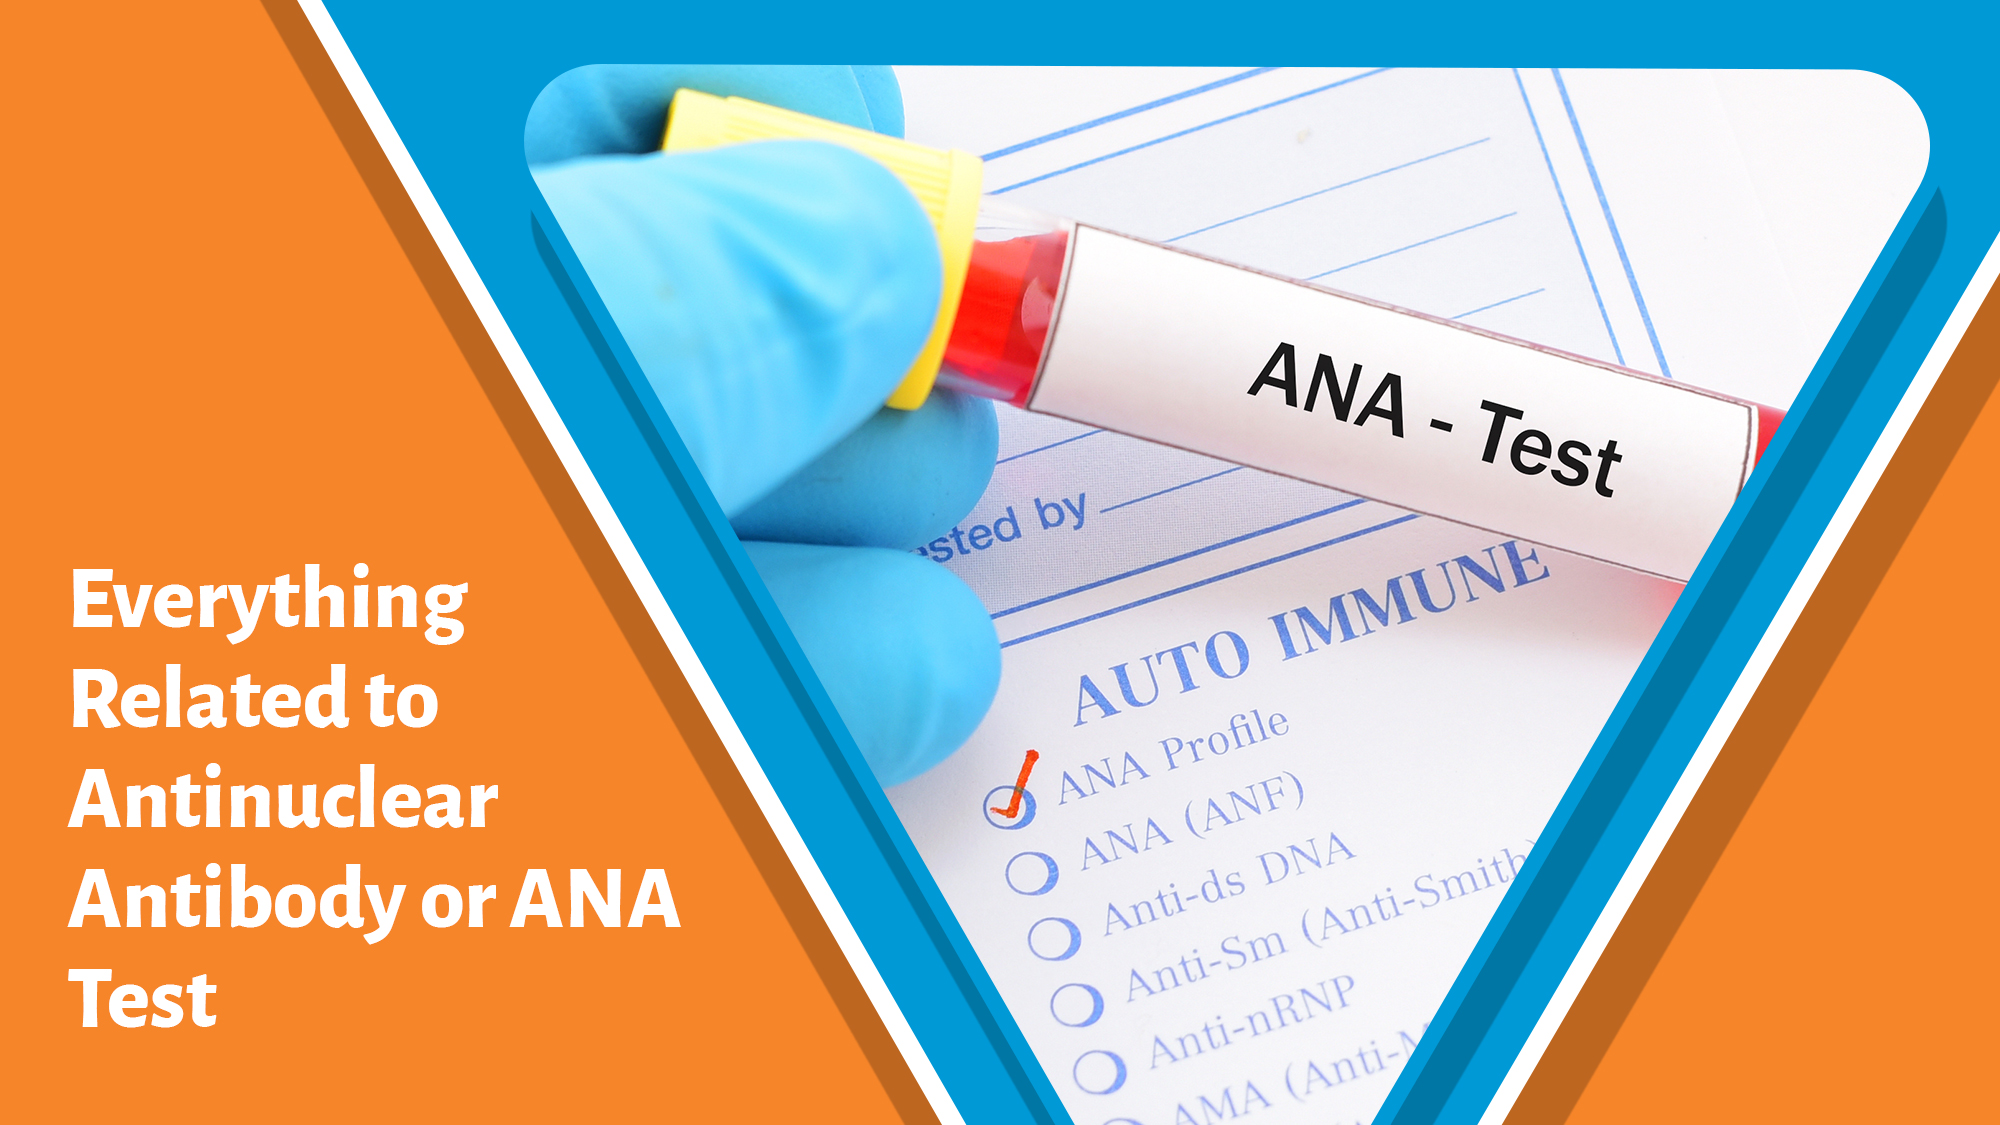 Everything Related to Antinuclear Antibody or ANA Test